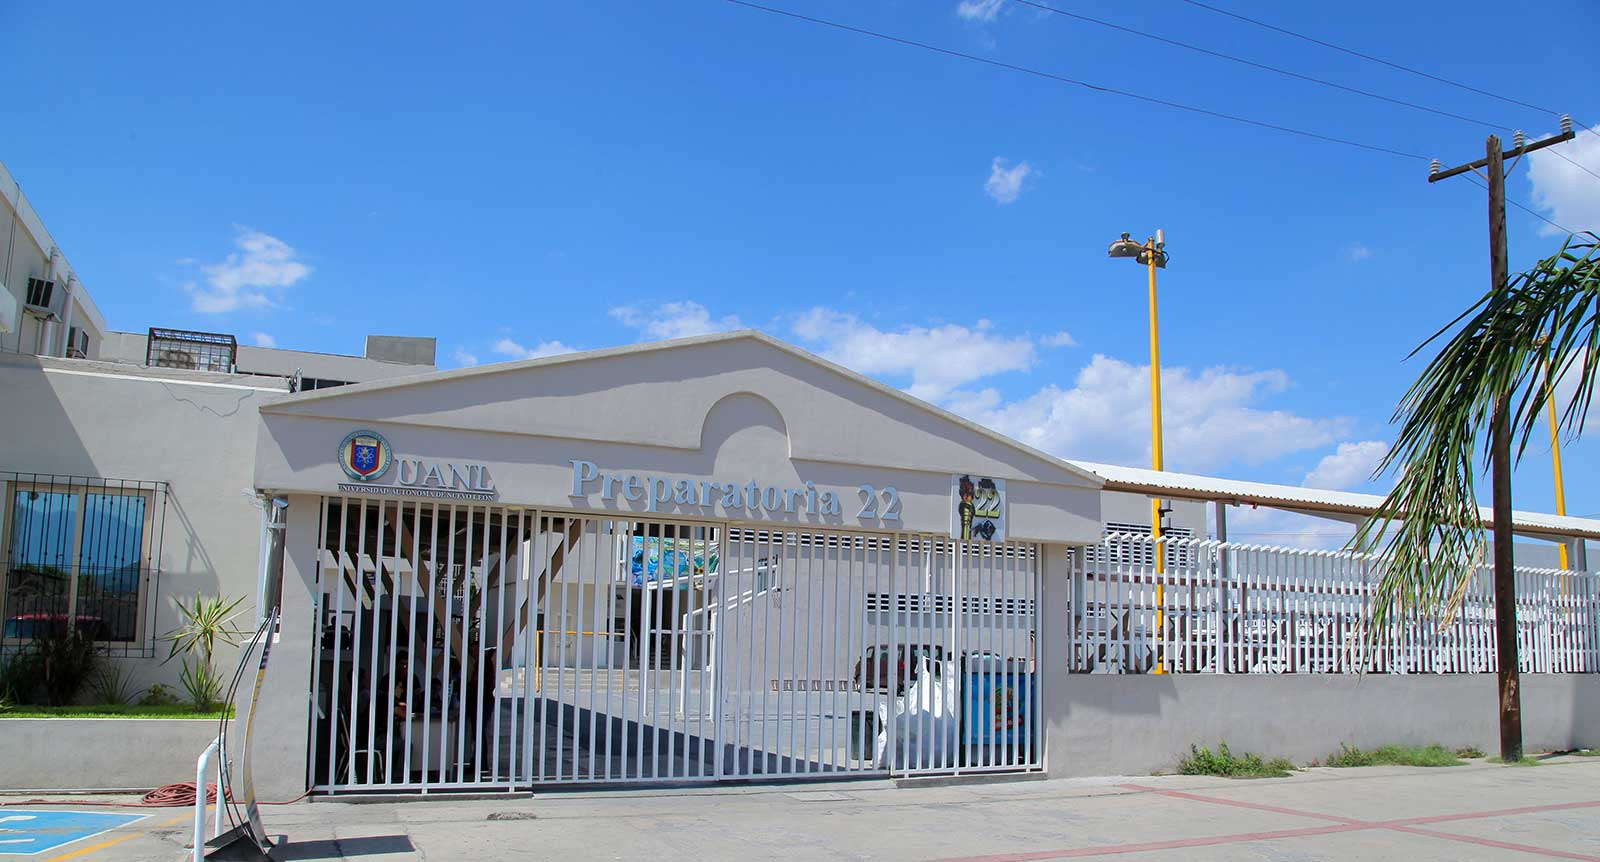 Escuela Preparatoria No. 22 Guadalupe